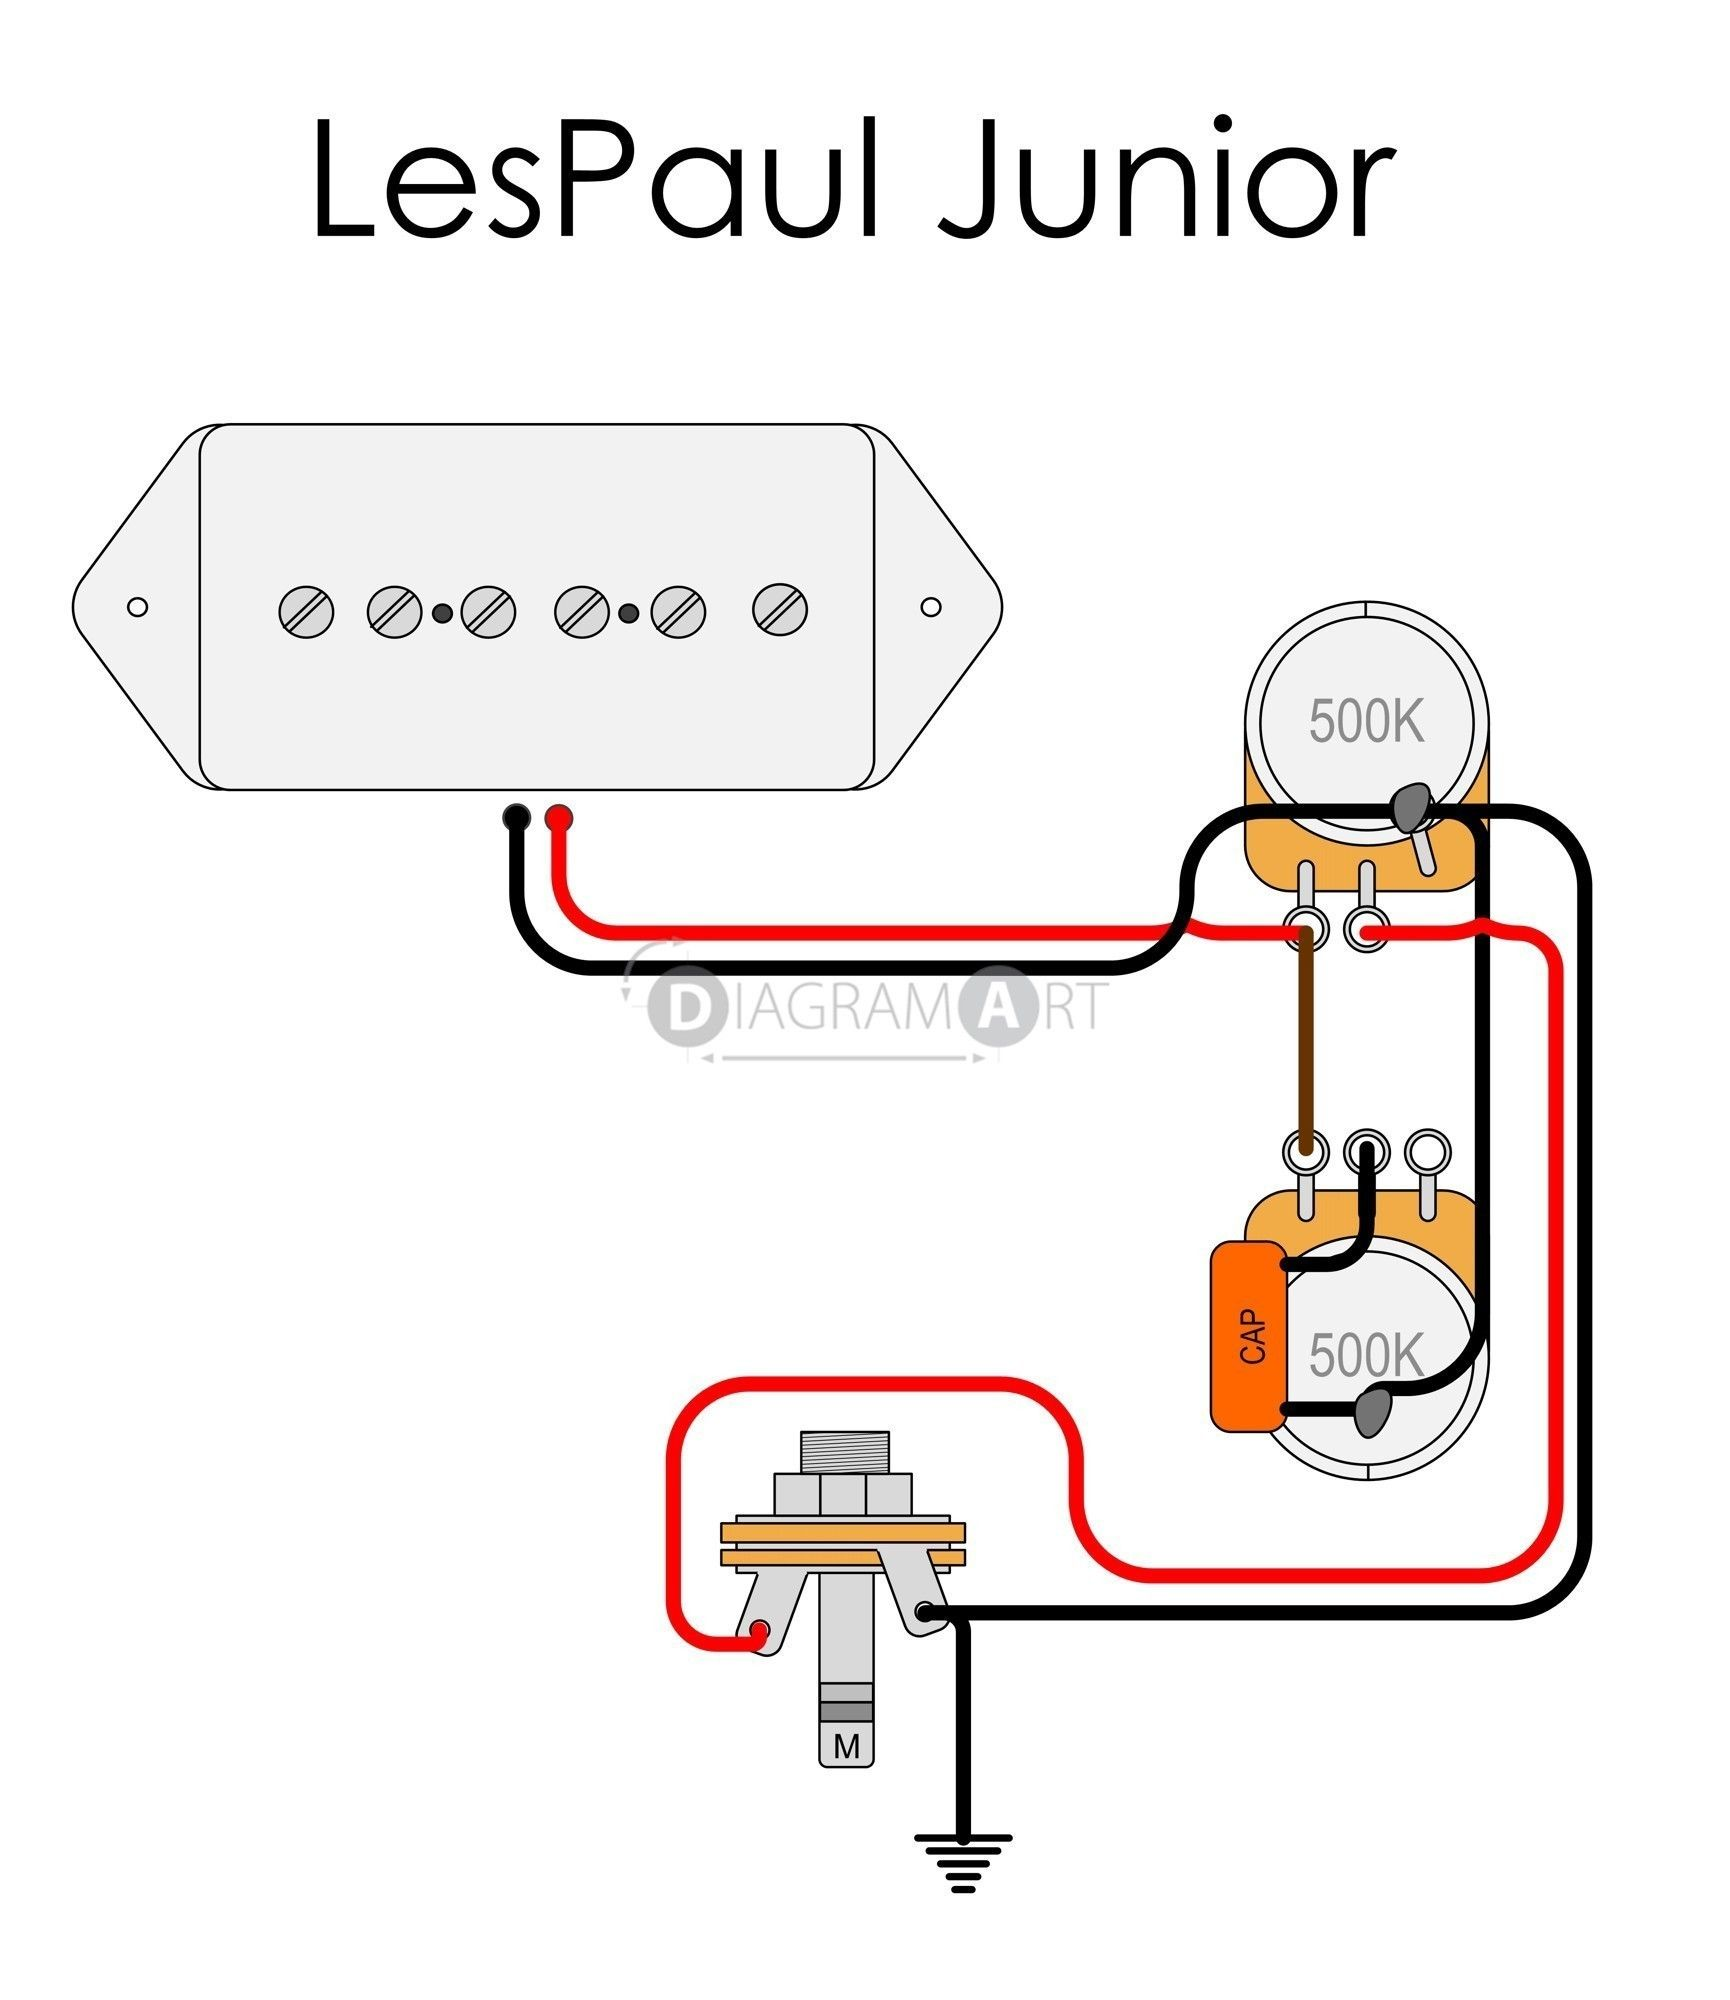 Diy Les Paul Wiring Vintage Versus Modern With Images Les